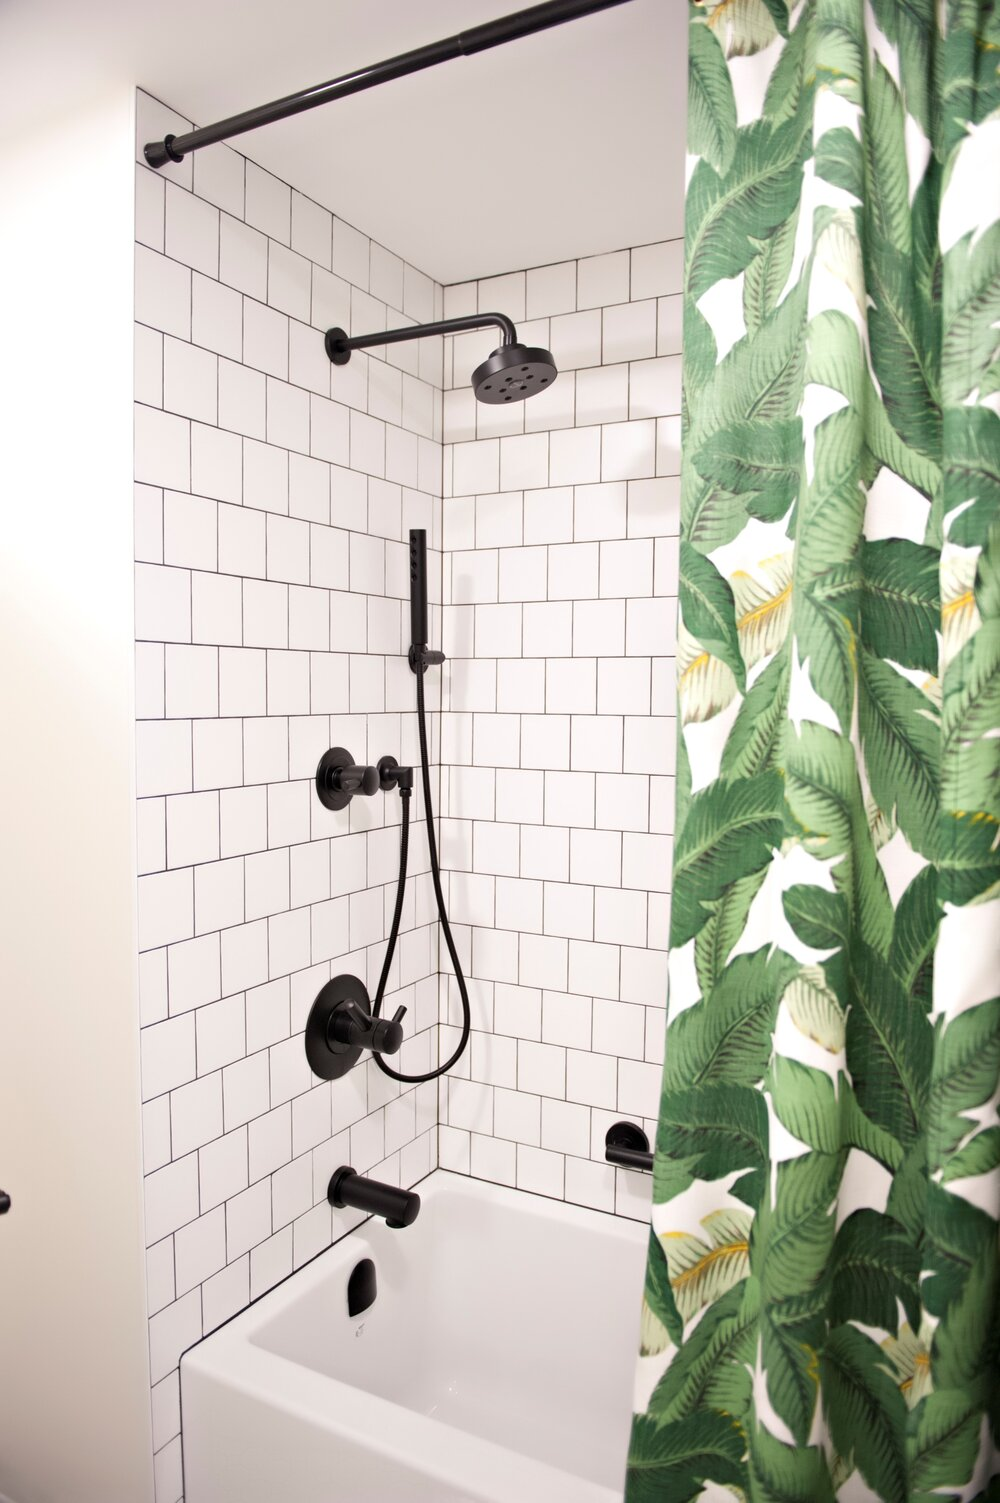 bathroom design — Blog — Candace Plotz Design - Interior Design